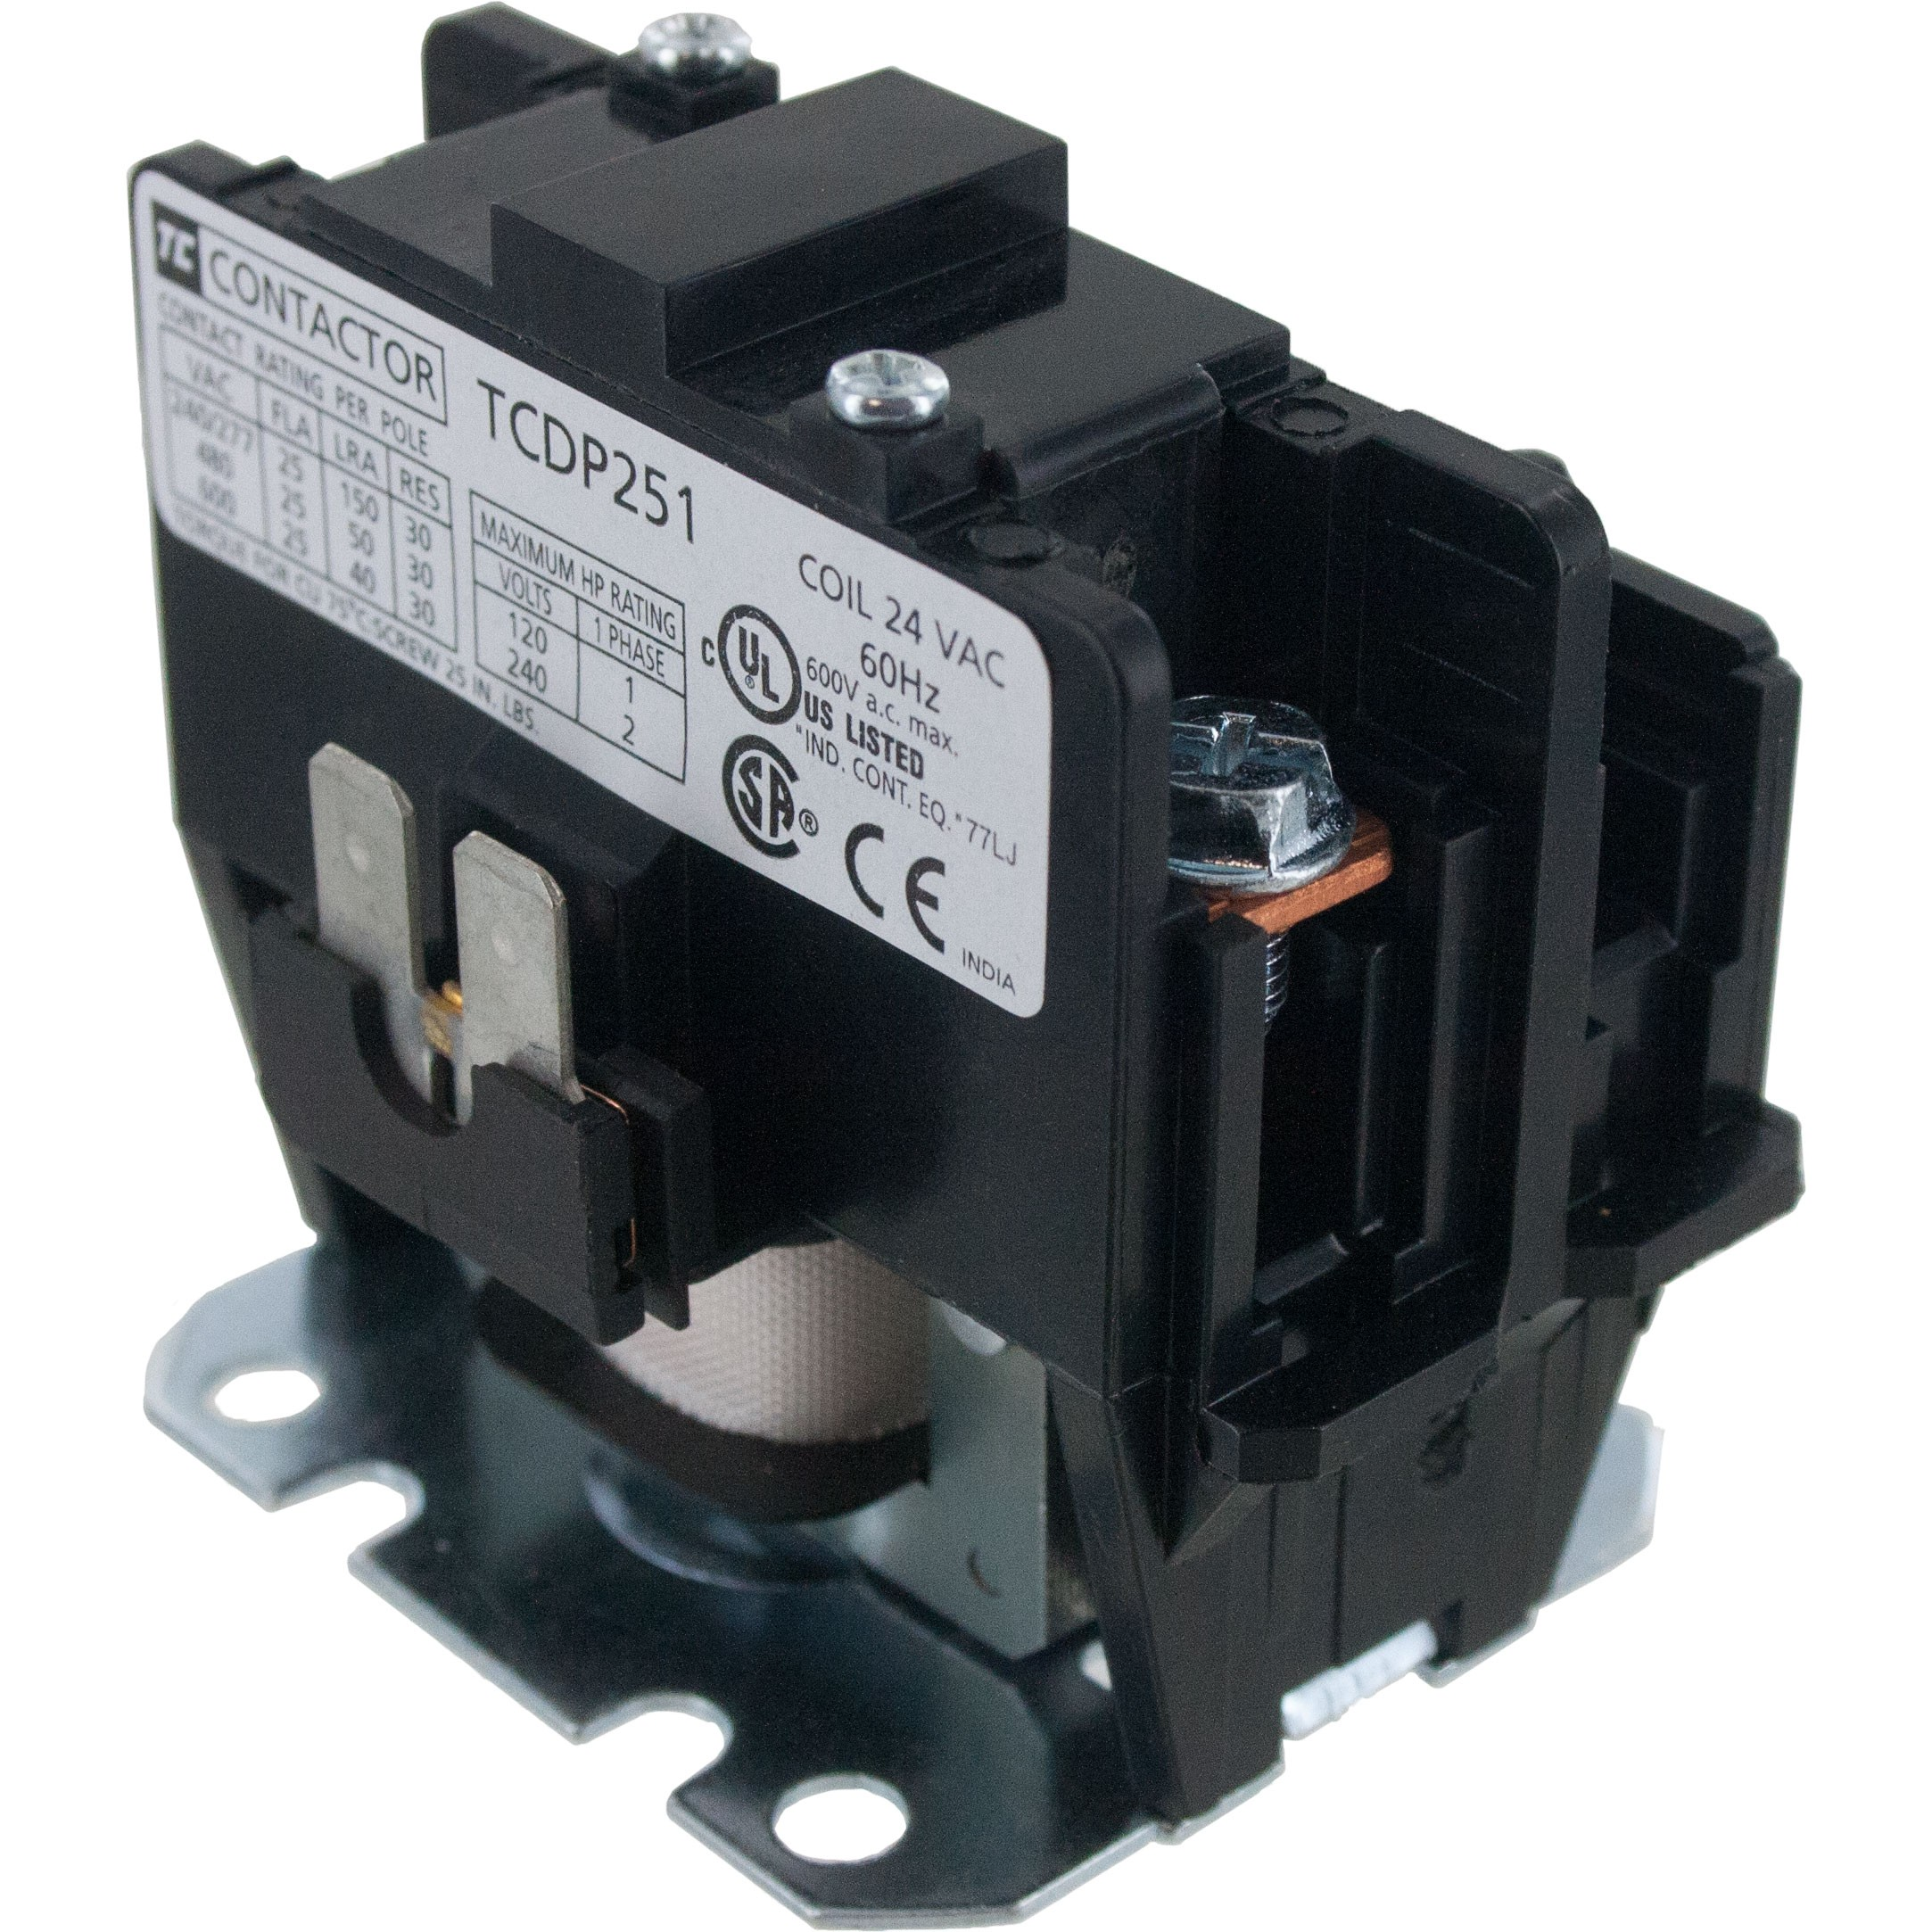 1 Pole Contactor 25 Amp 24VAC Coil | ElecDirect